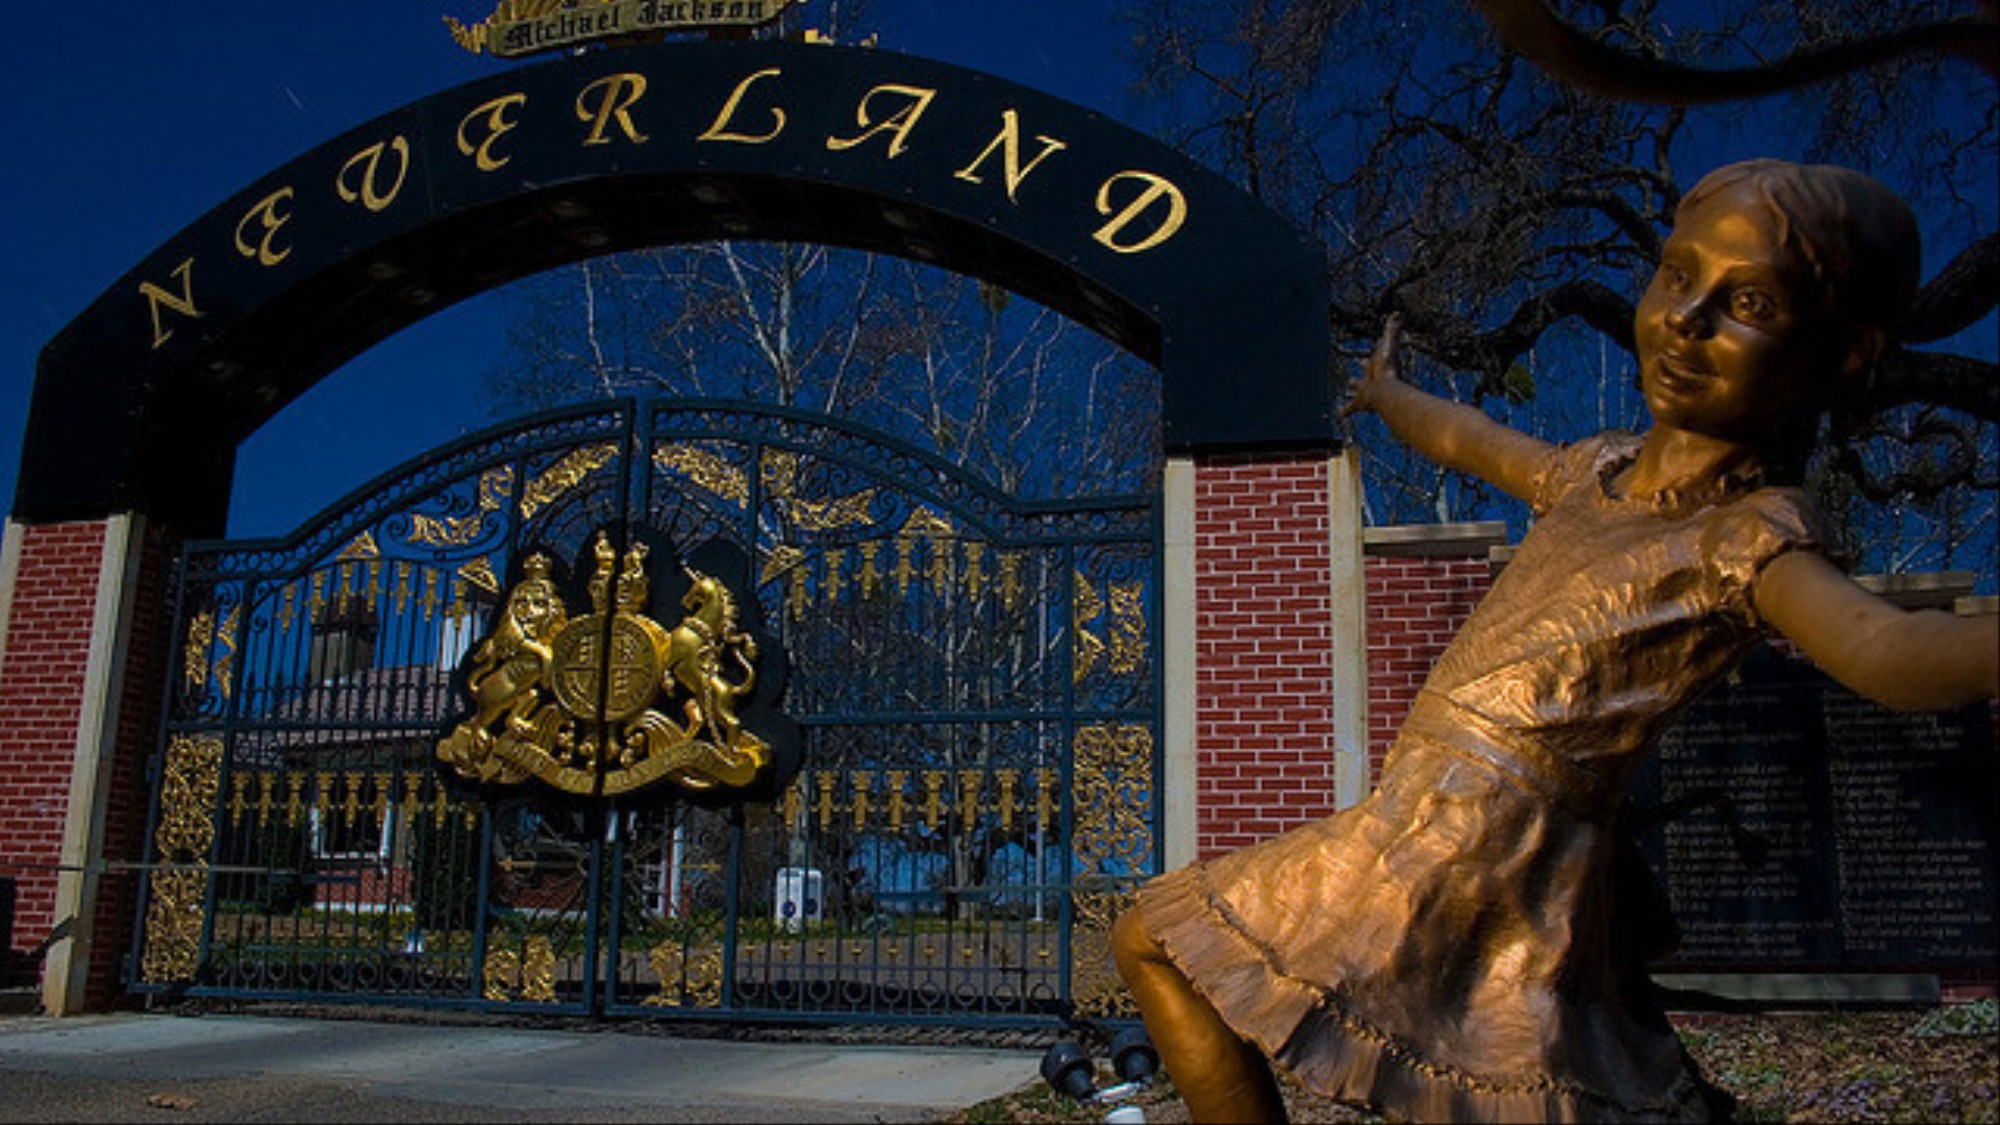 Photographers Snuck Into Micheal Jackson's Neverland Ranch To Take Creepy Pictures